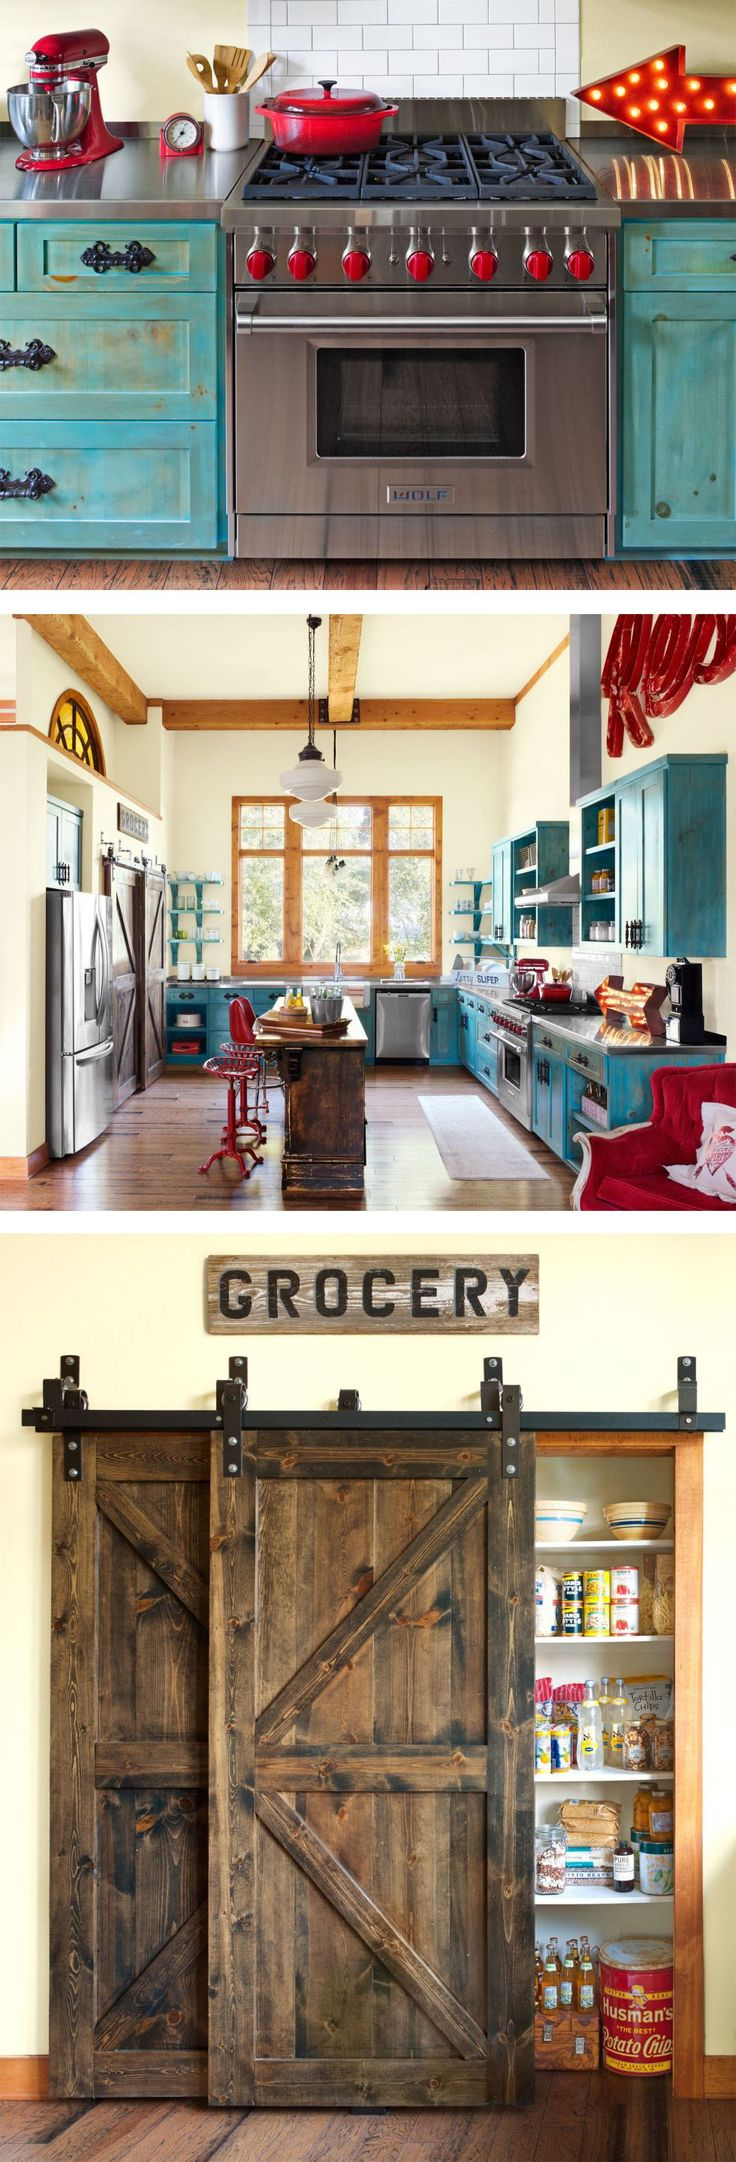 10 Ways to Add Colorful Style to Your Kitchen. Red KitchenCountry  KitchenKitchen ColorsKitchen Ideas ...